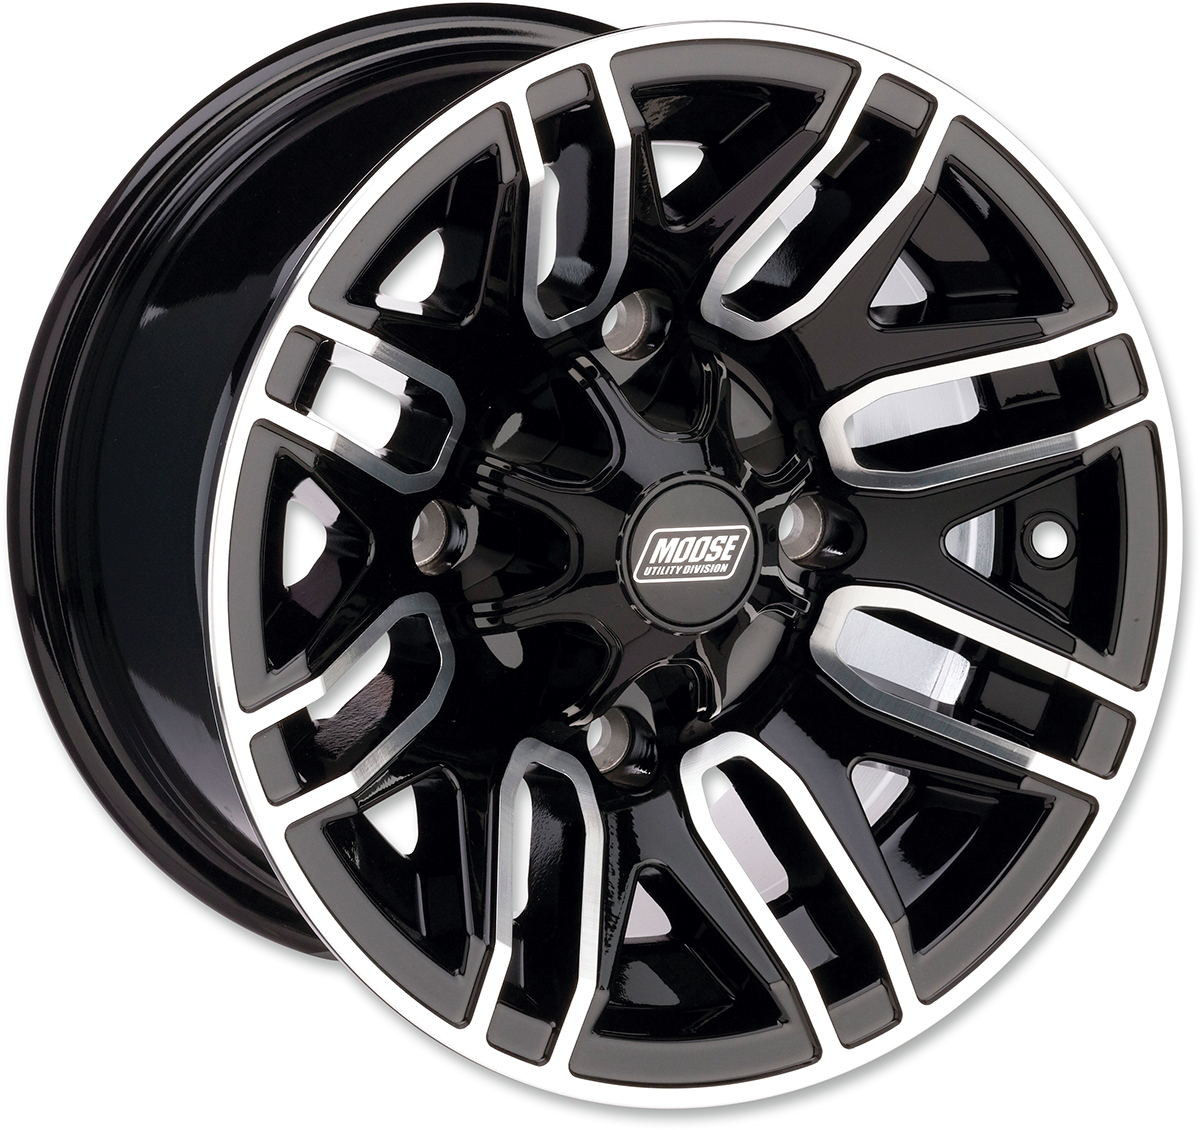 Moose 14x7 / 14x8 4x136 112X vannesarja Can-Am